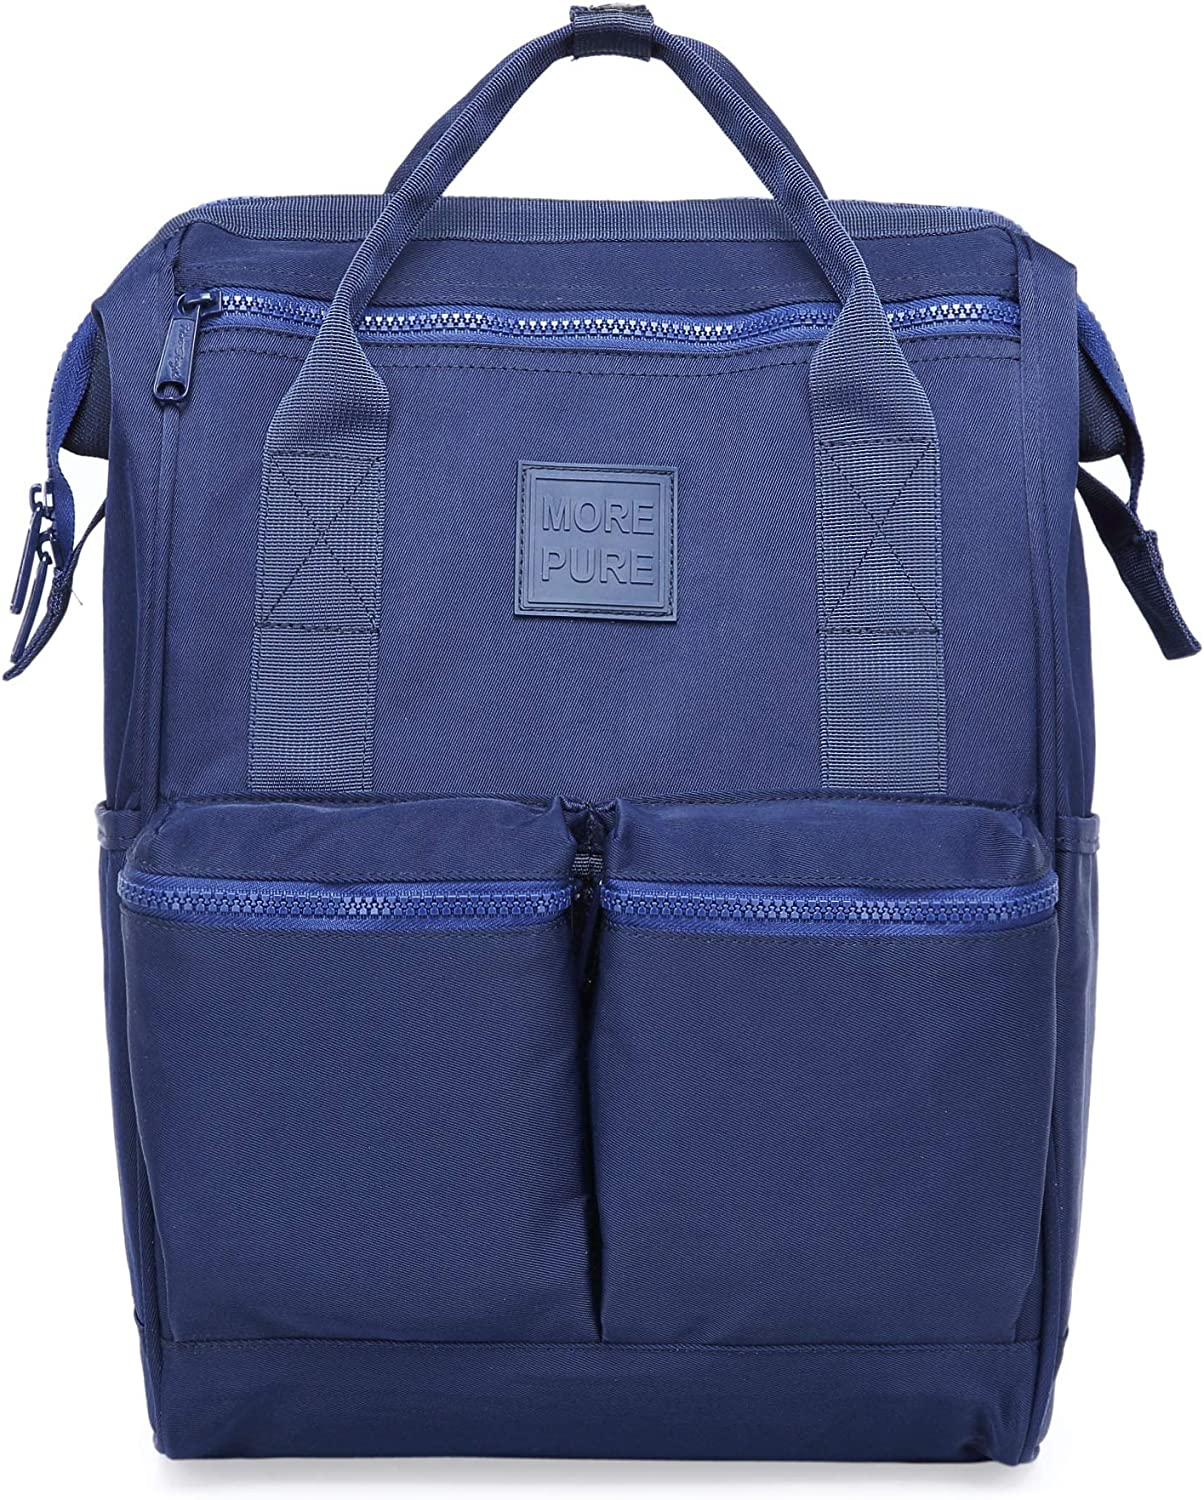 [HotStyle Basic Classic] 599s Vintage Denim Bookbag (1342 cu in) with 15.6inch Laptop Sleeve